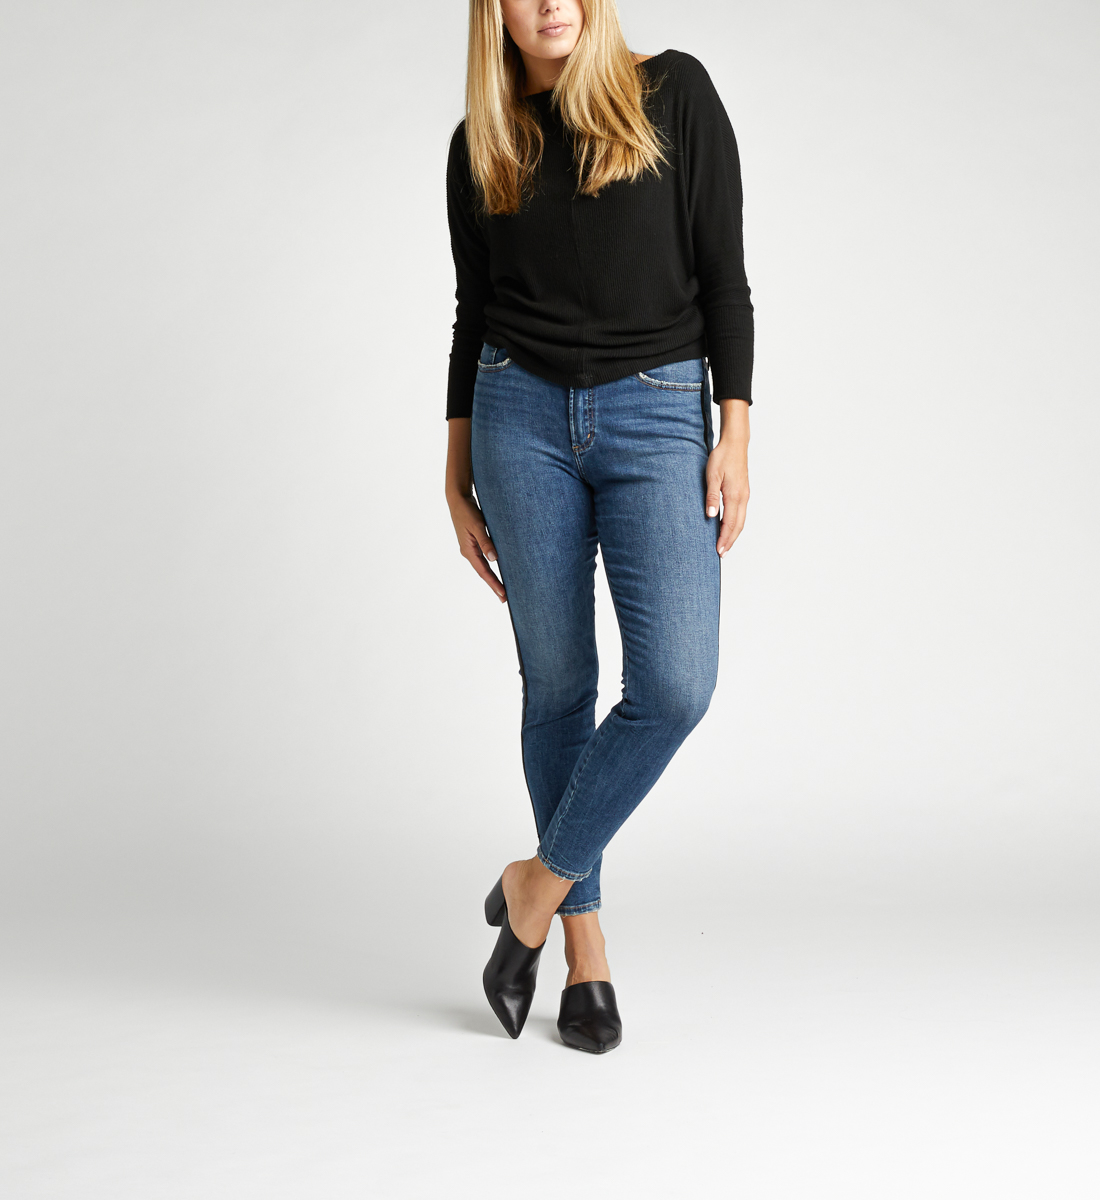 Calley Super High Rise Skinny Jeans Alt Image 1